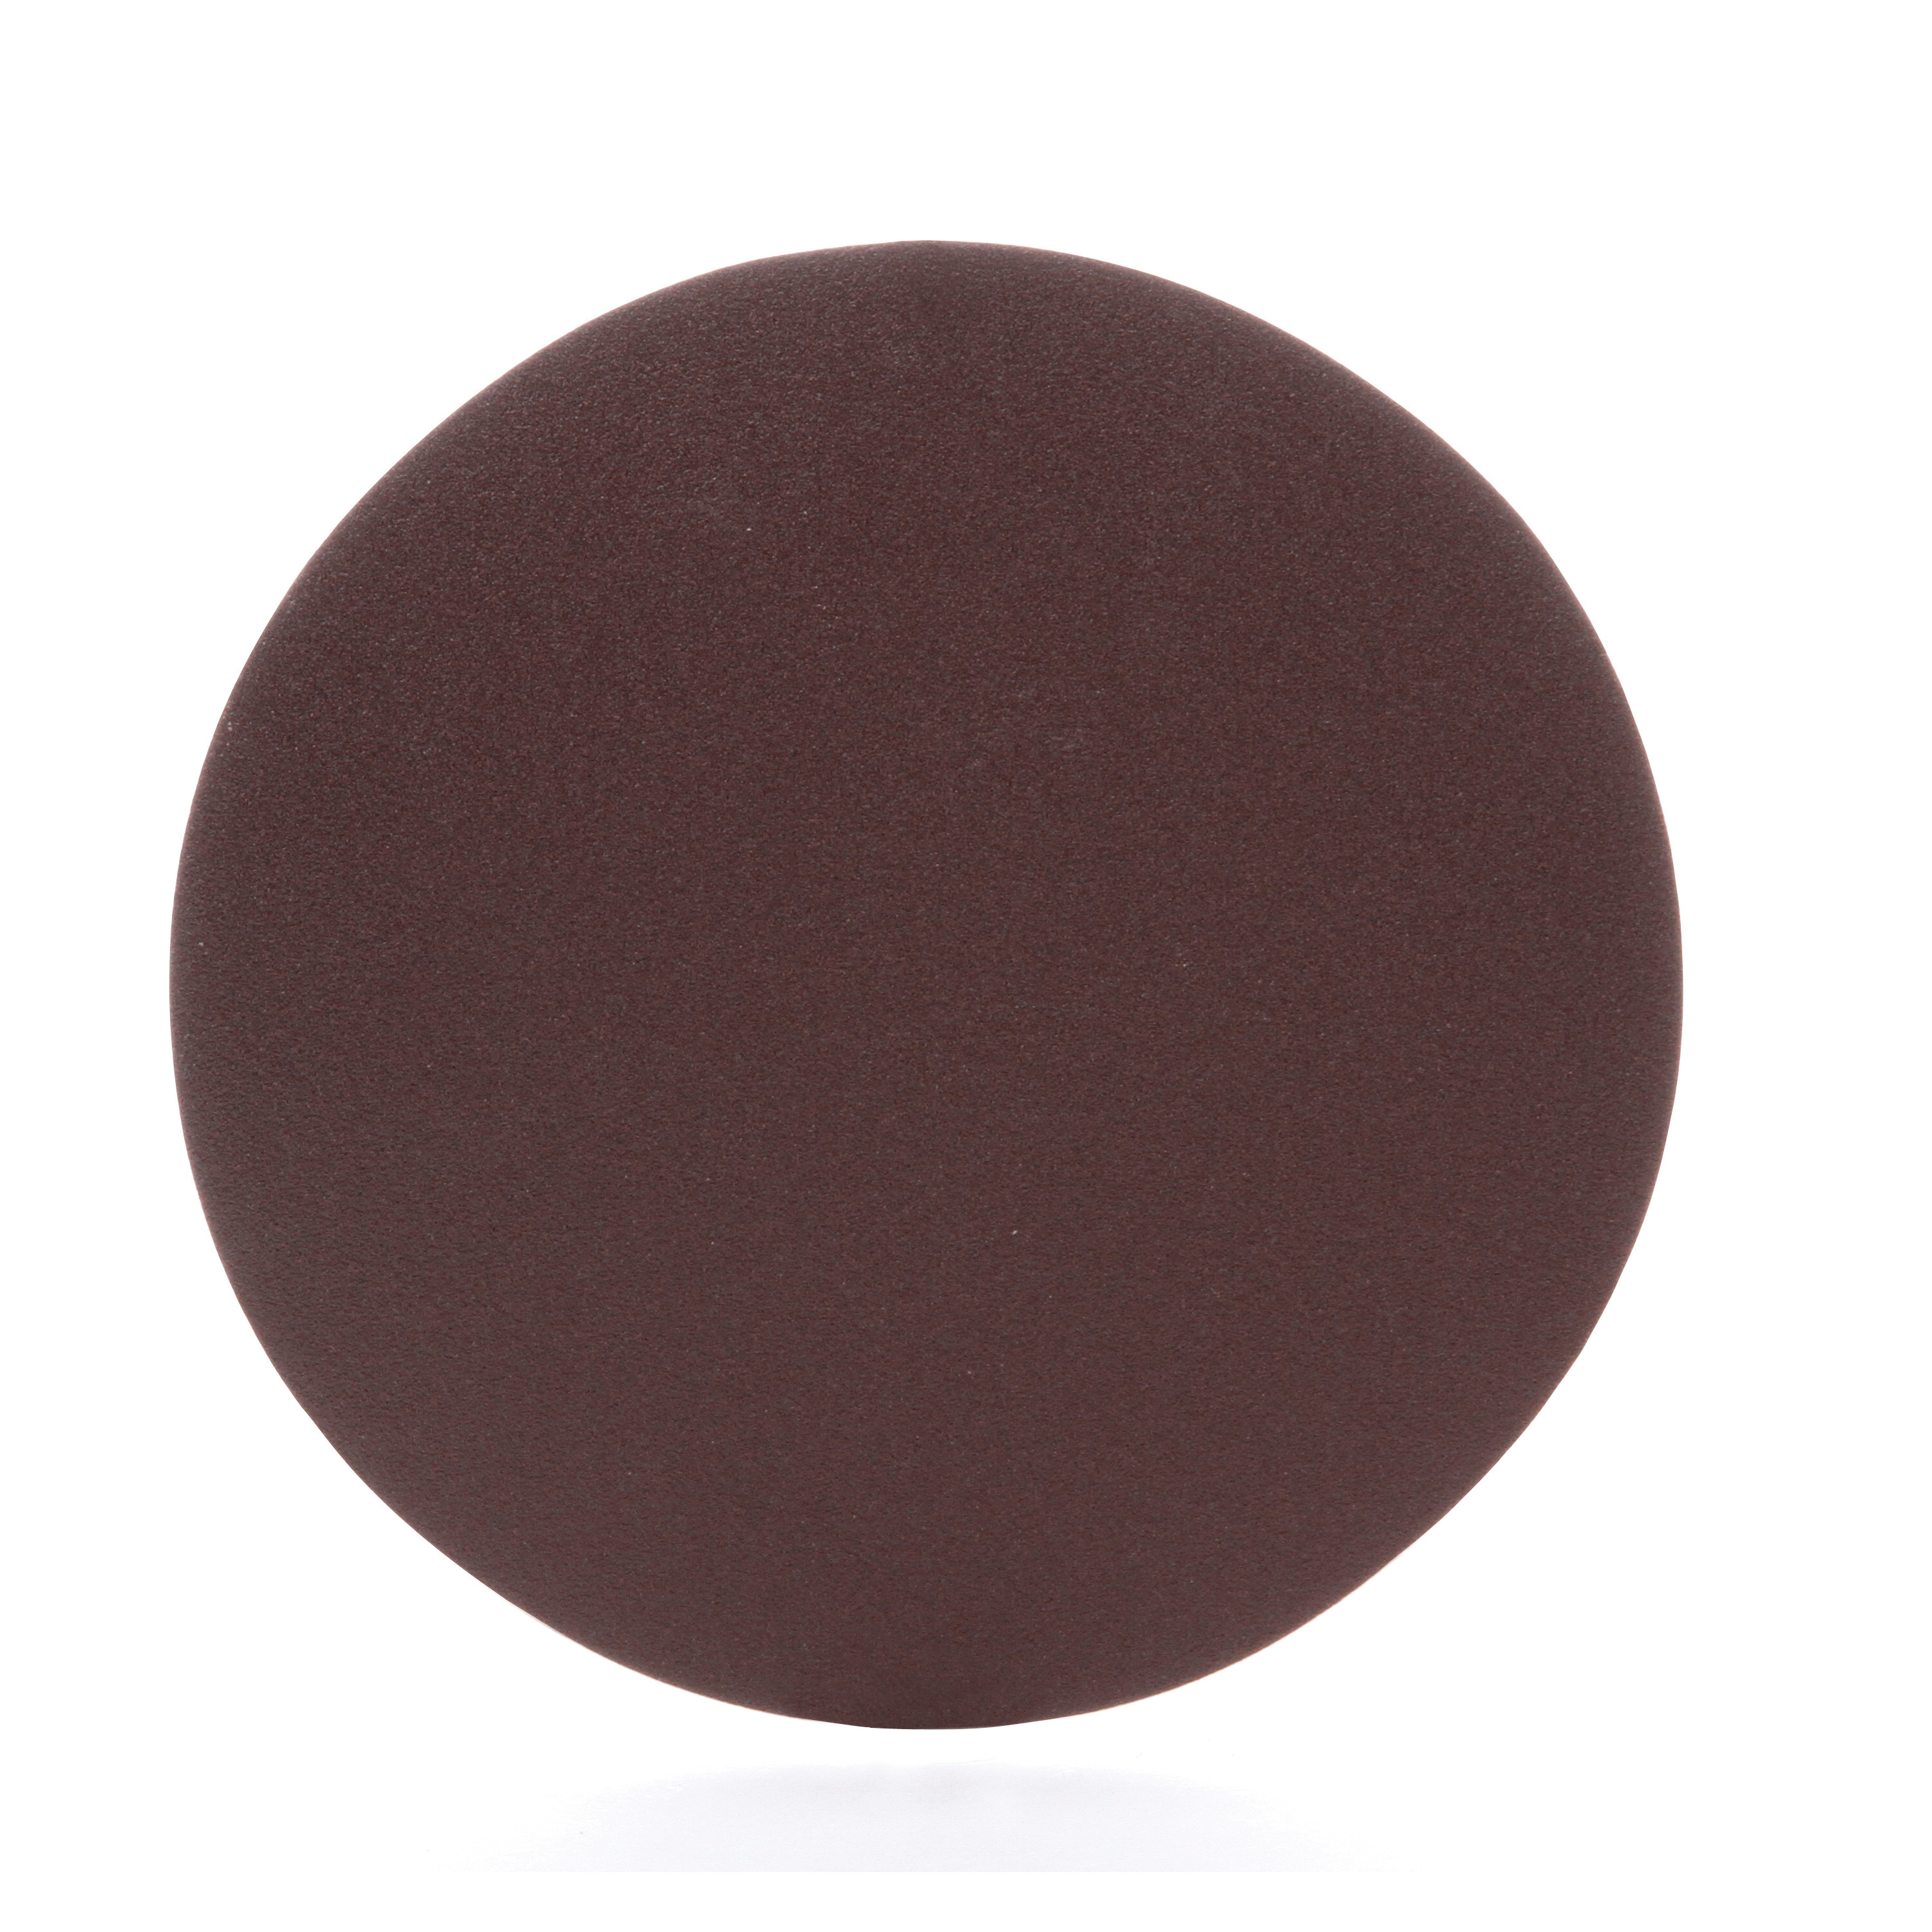 Stikit™ 051111-50454 General Purpose PSA Open Coated Abrasive Disc With Liner, 5 in Dia, P180 Grit, Very Fine Grade, Aluminum Oxide Abrasive, Cloth Backing